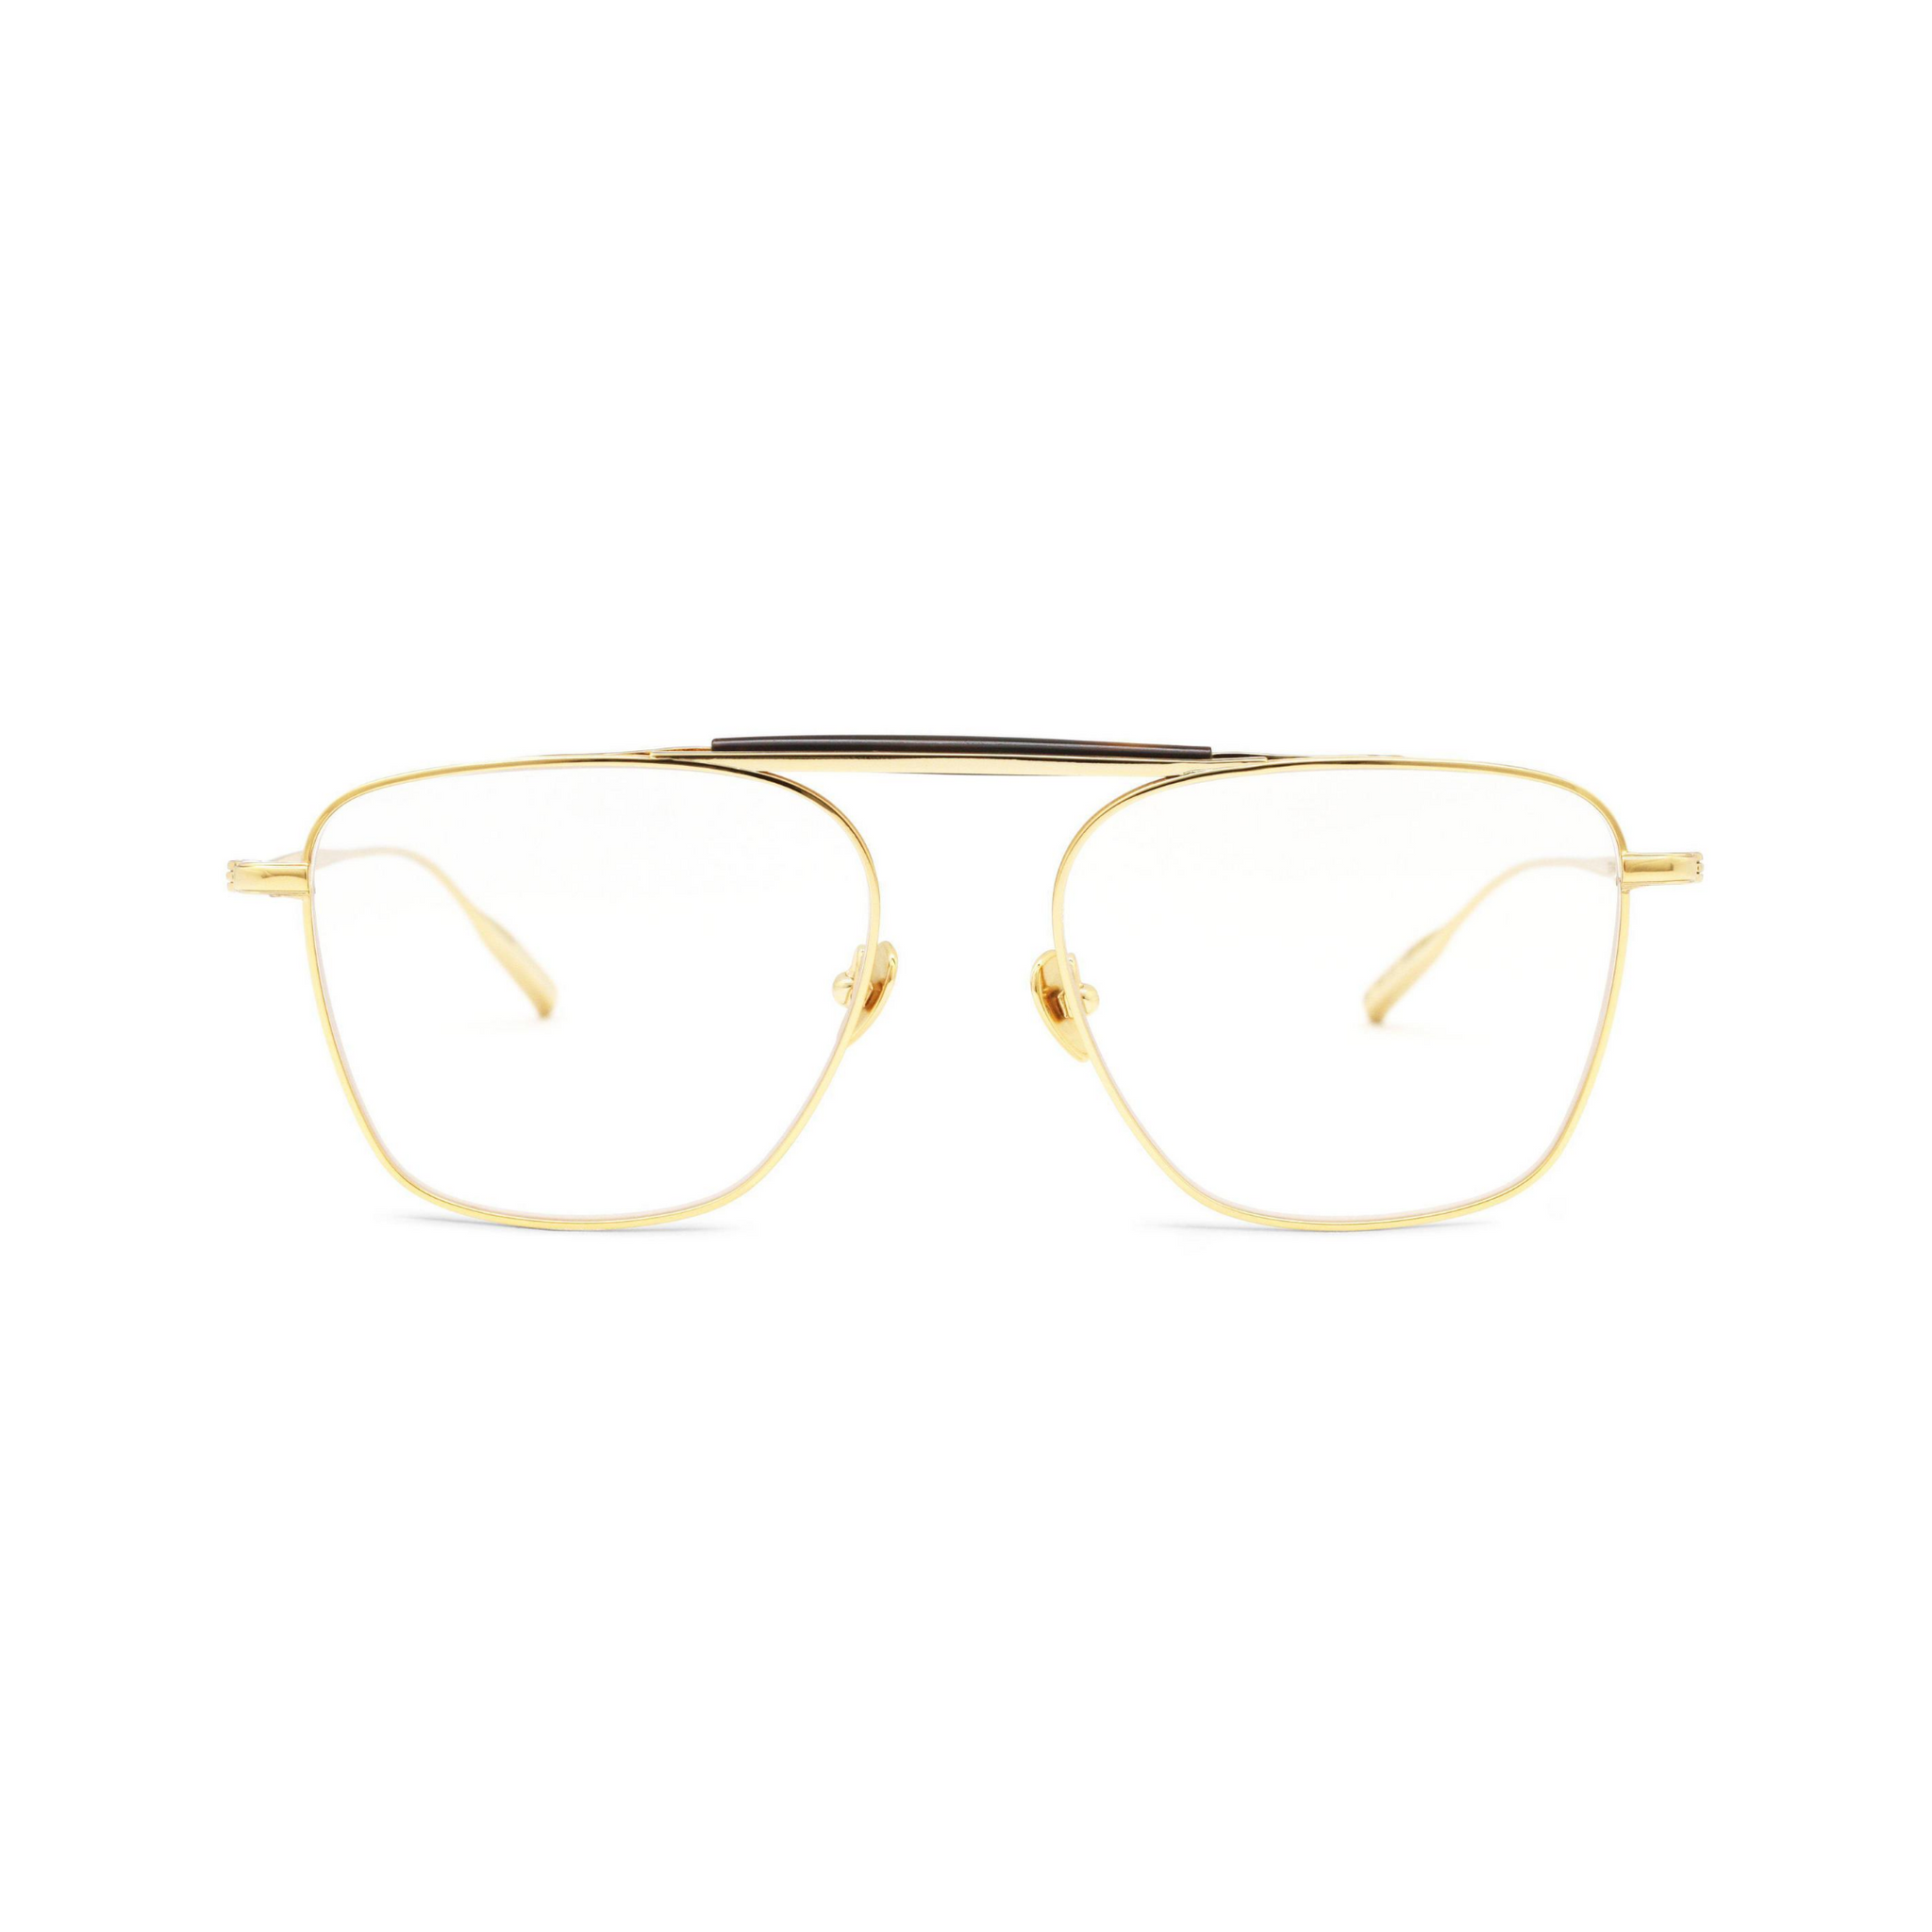 BENJAMIN - 18K Gold - Optical